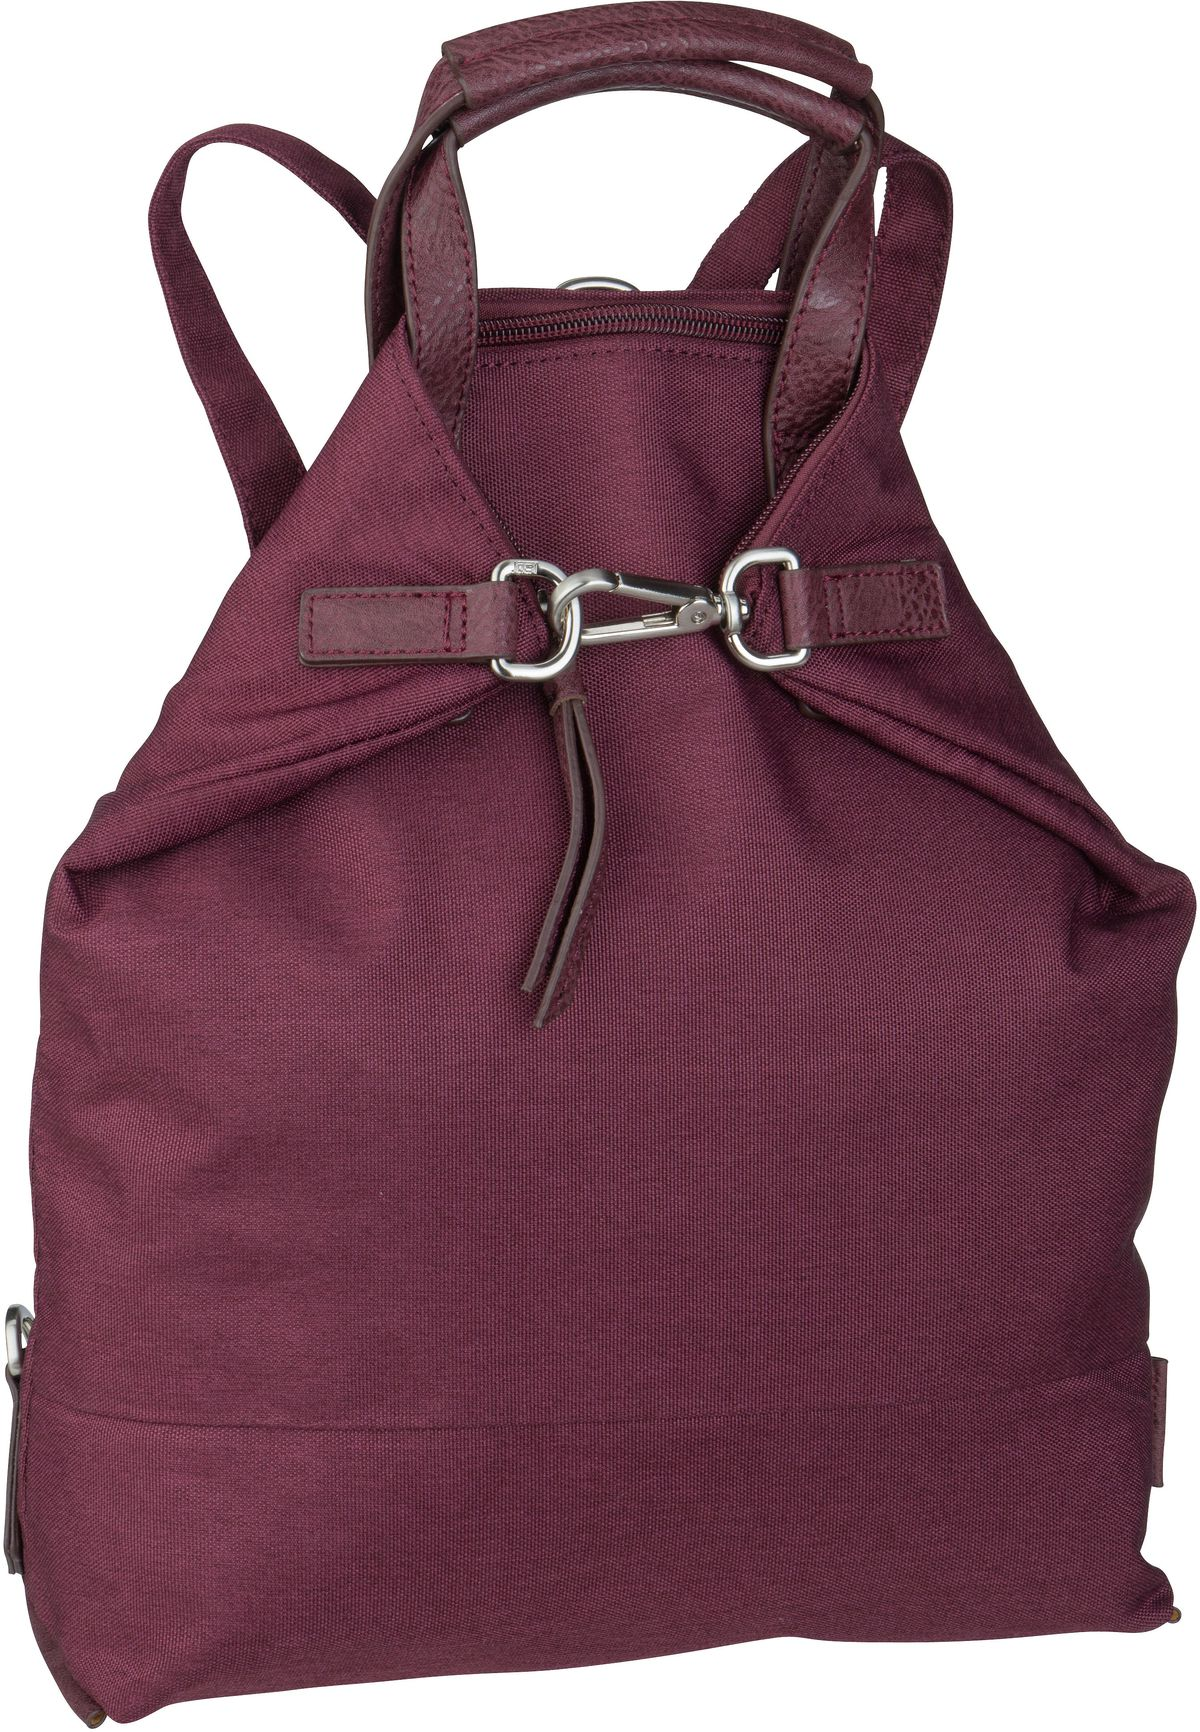 Jost Rucksack / Daypack 1126 X-Change Bag XS Bordeaux